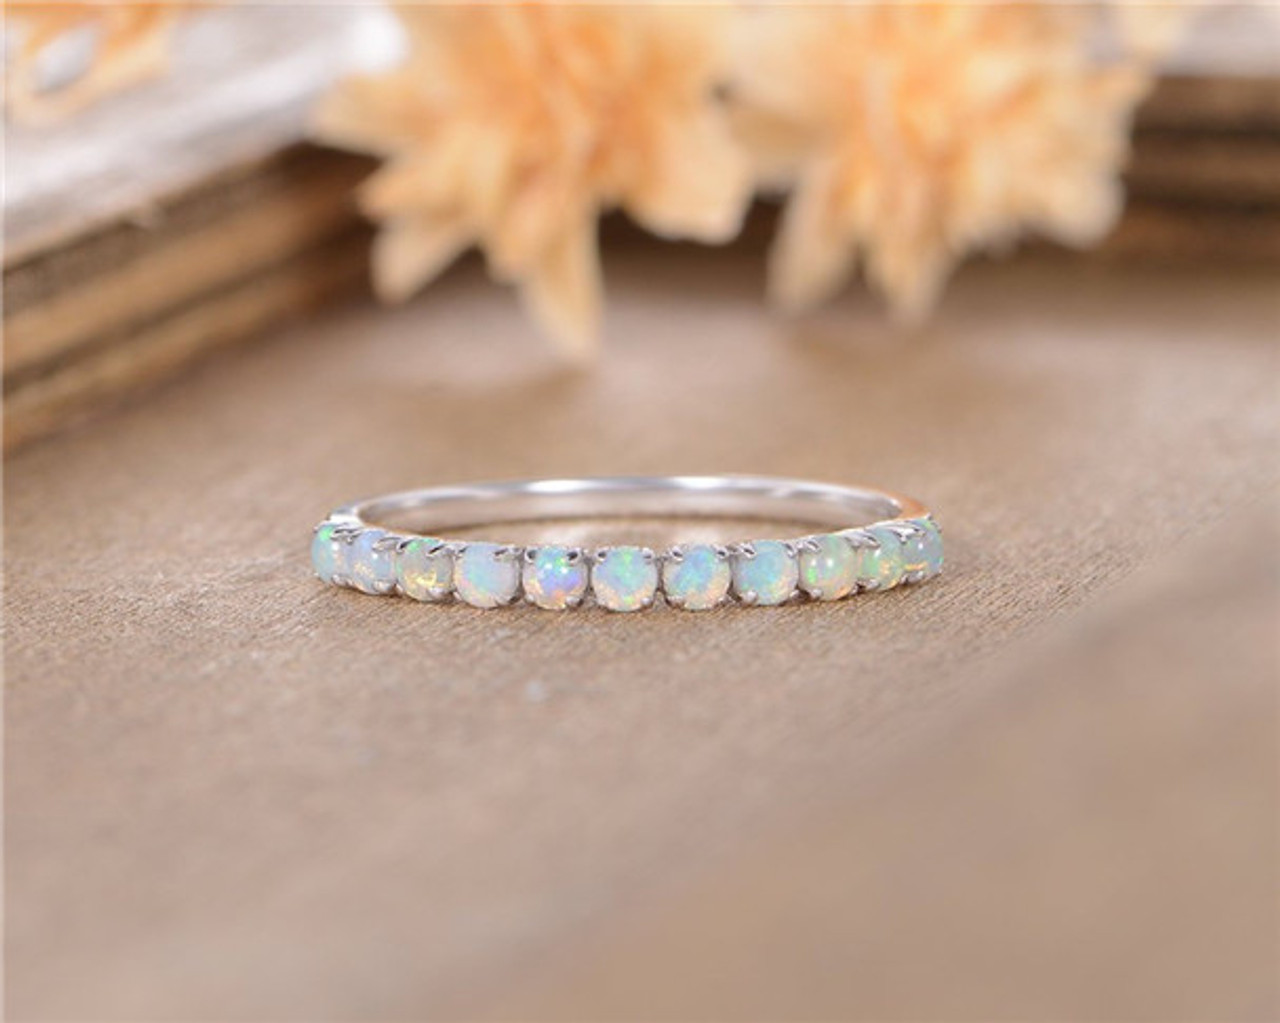 d2612ccb14b08 Opal Wedding Band Women White Gold October Birthstone Anniversary Gift  Promise Ring